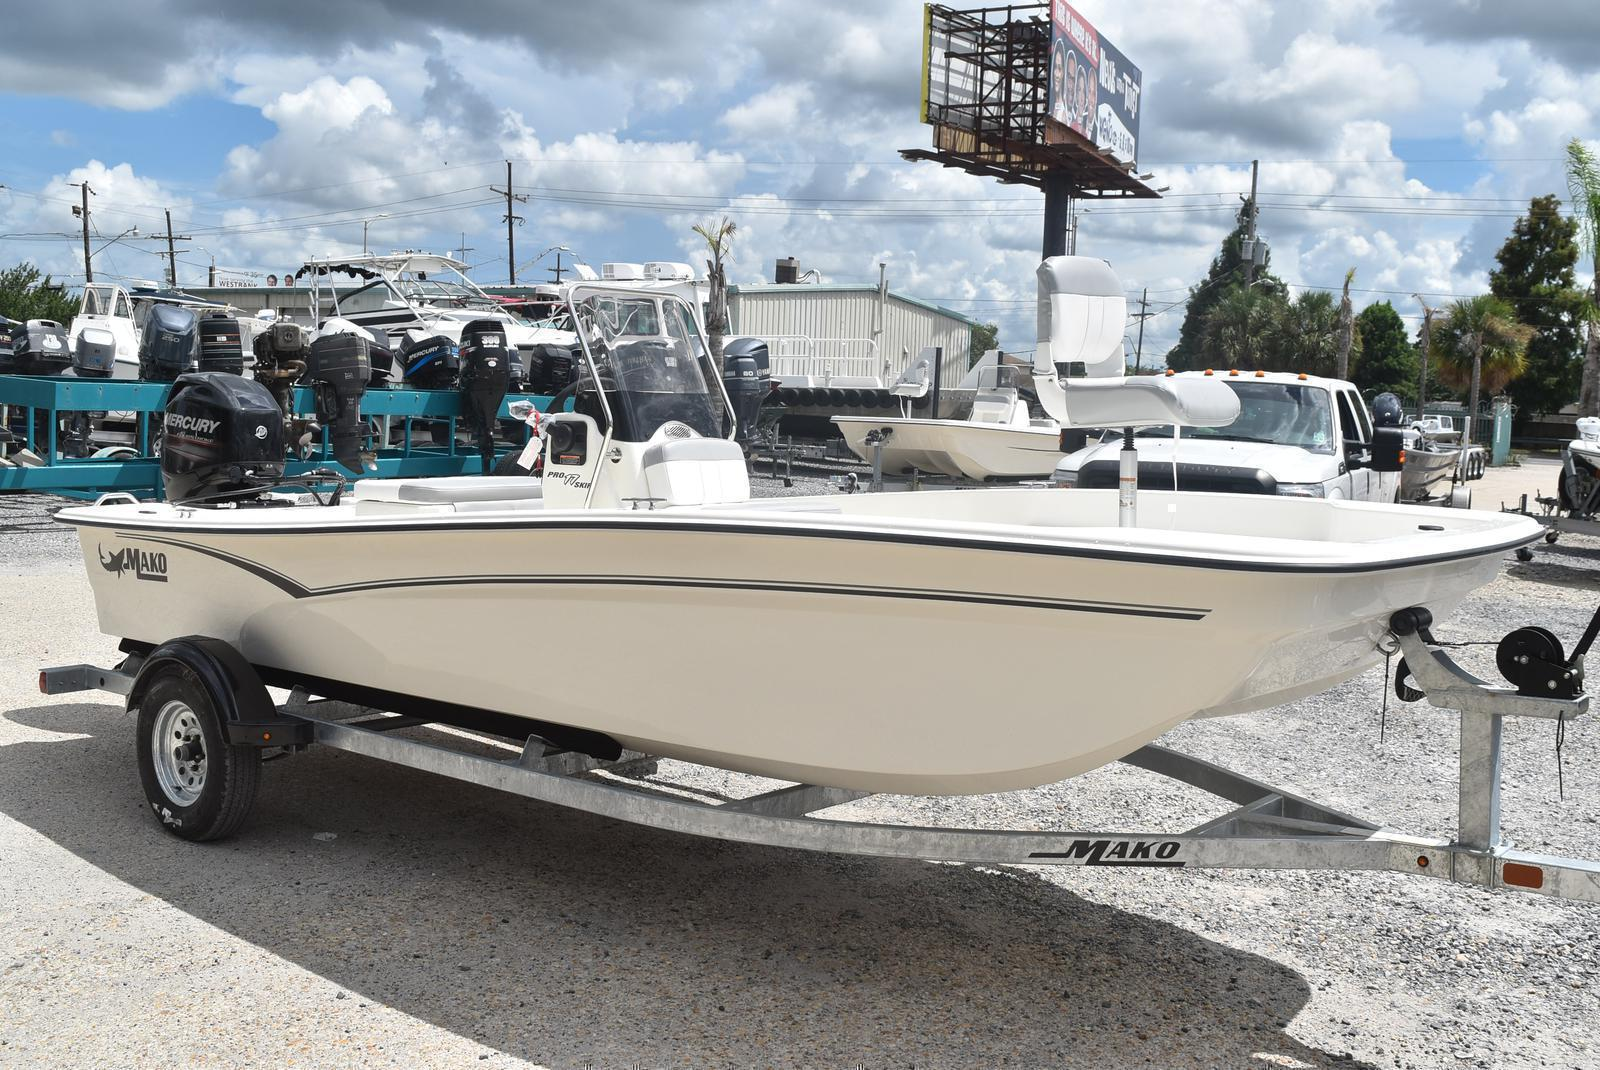 2020 Mako boat for sale, model of the boat is Pro Skiff 17, 75 ELPT & Image # 646 of 702